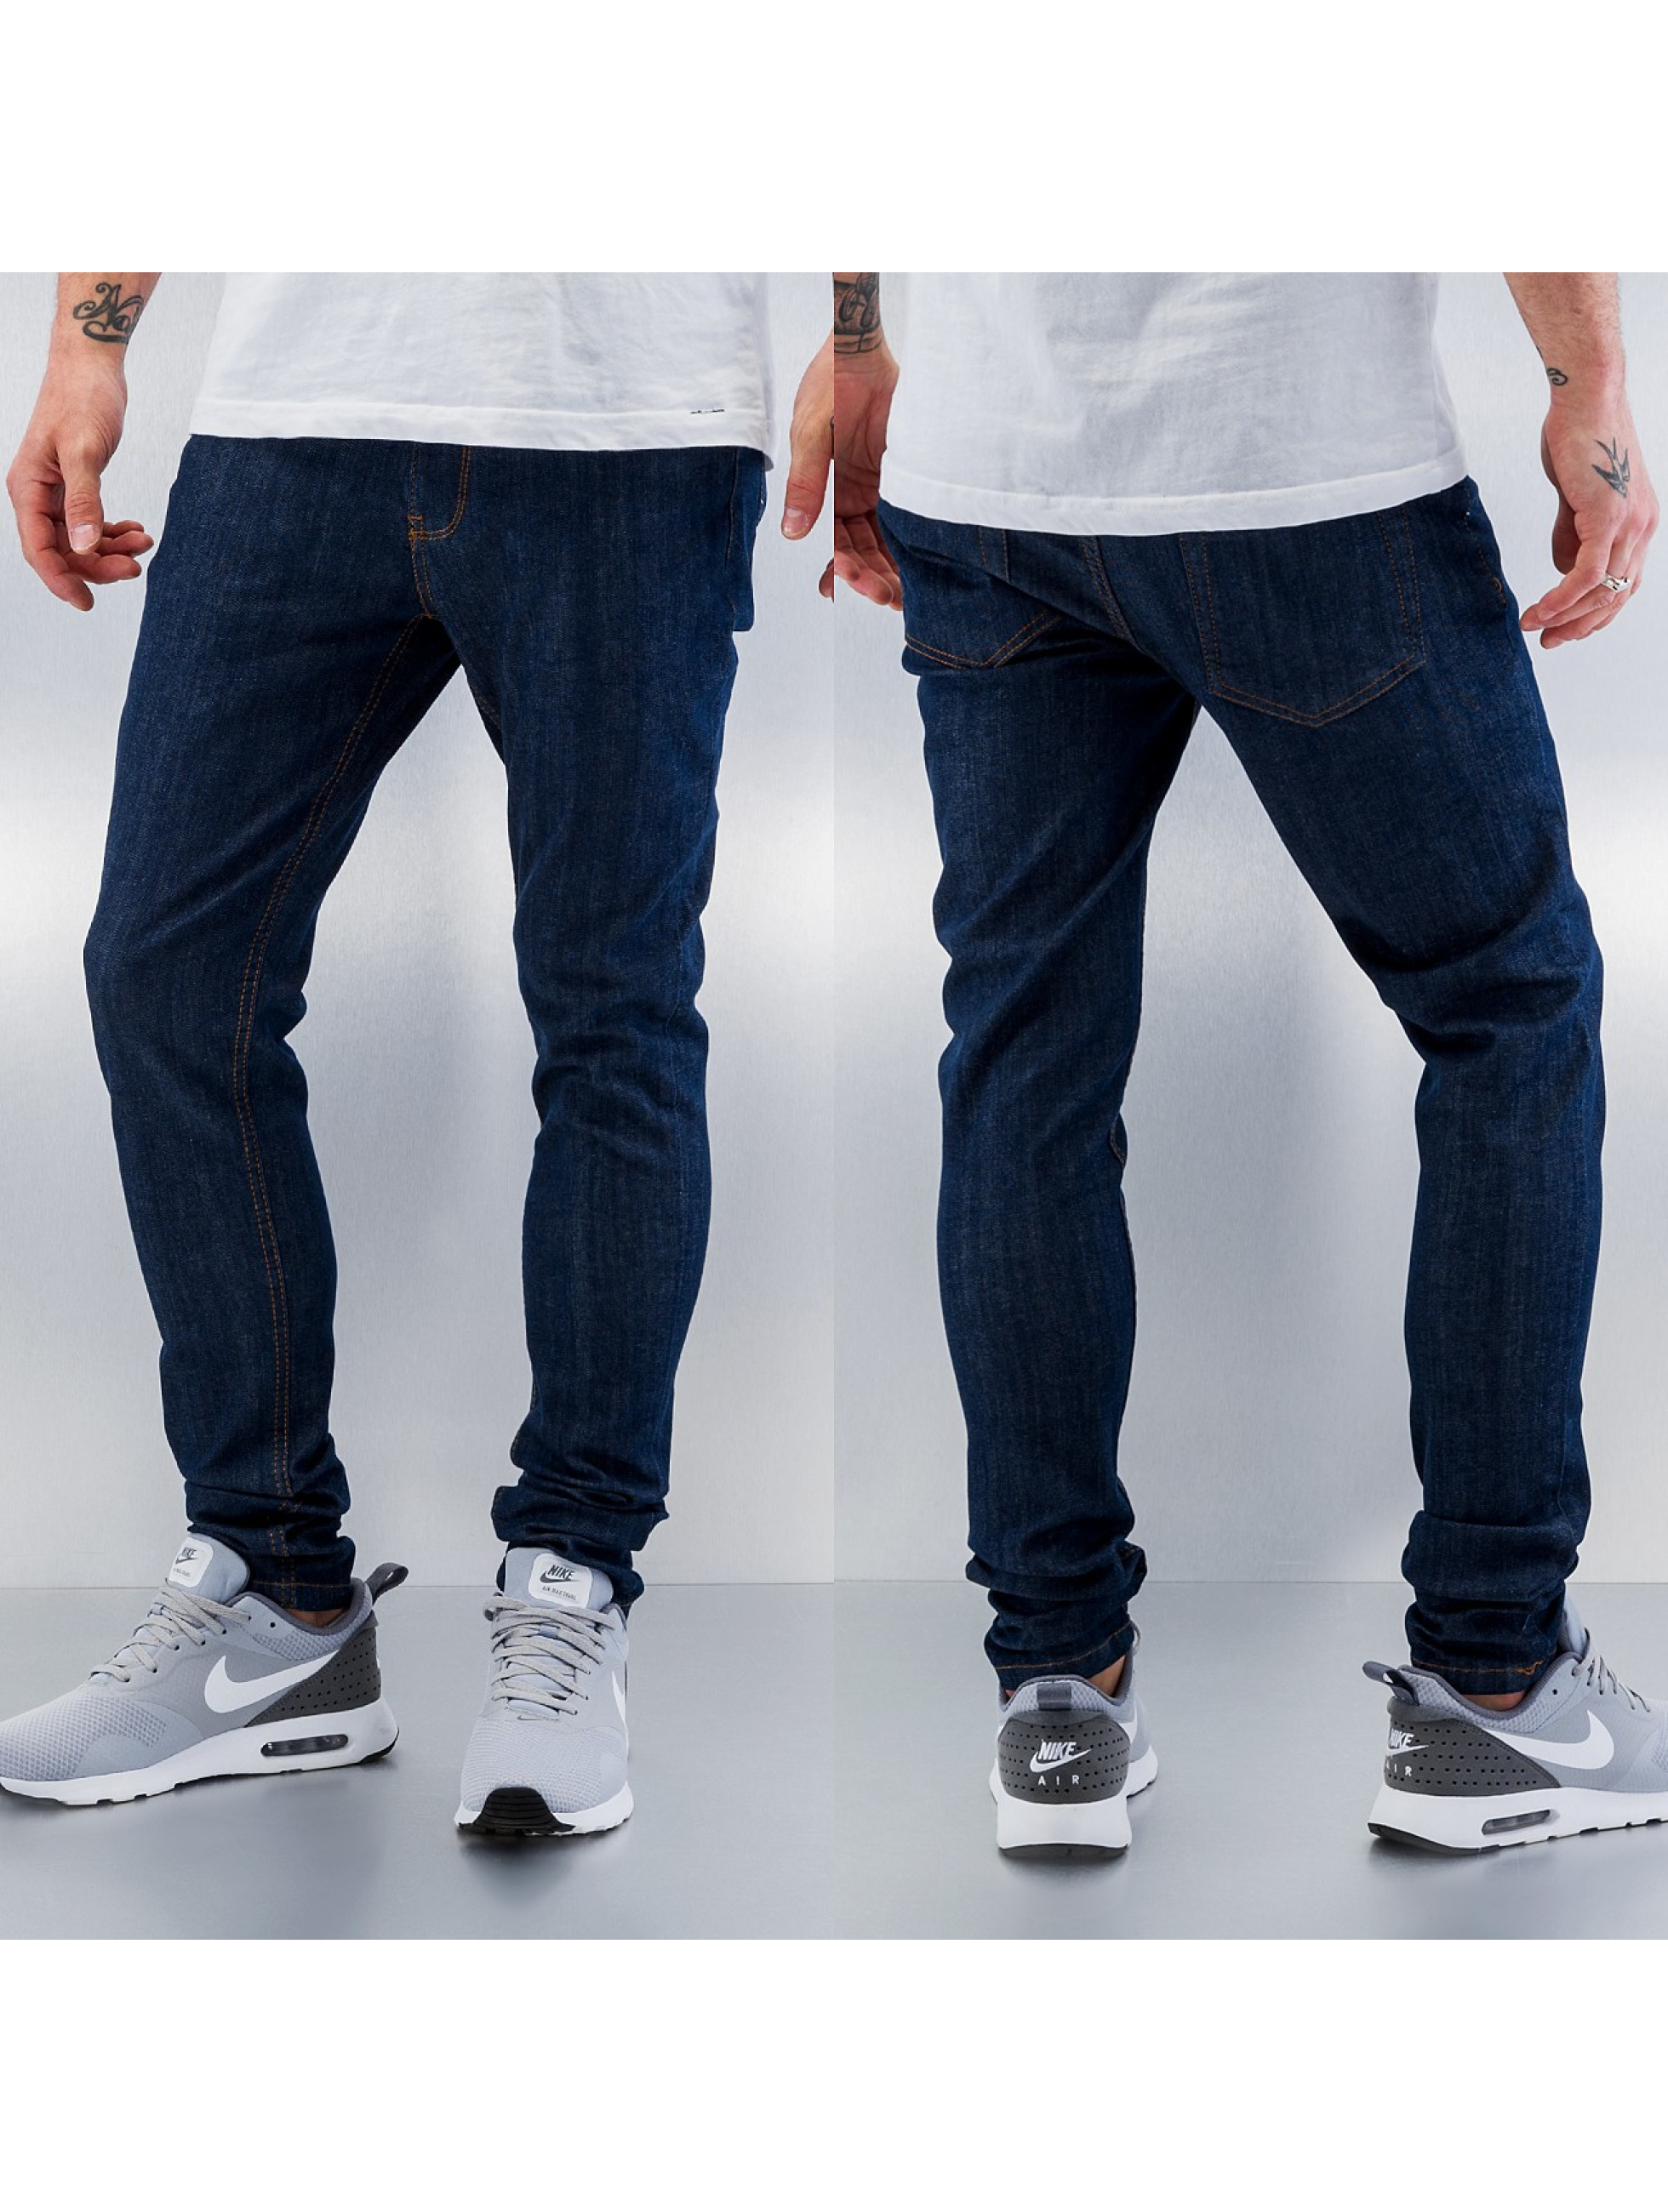 Criminal Damage Skinny jeans Super indigo